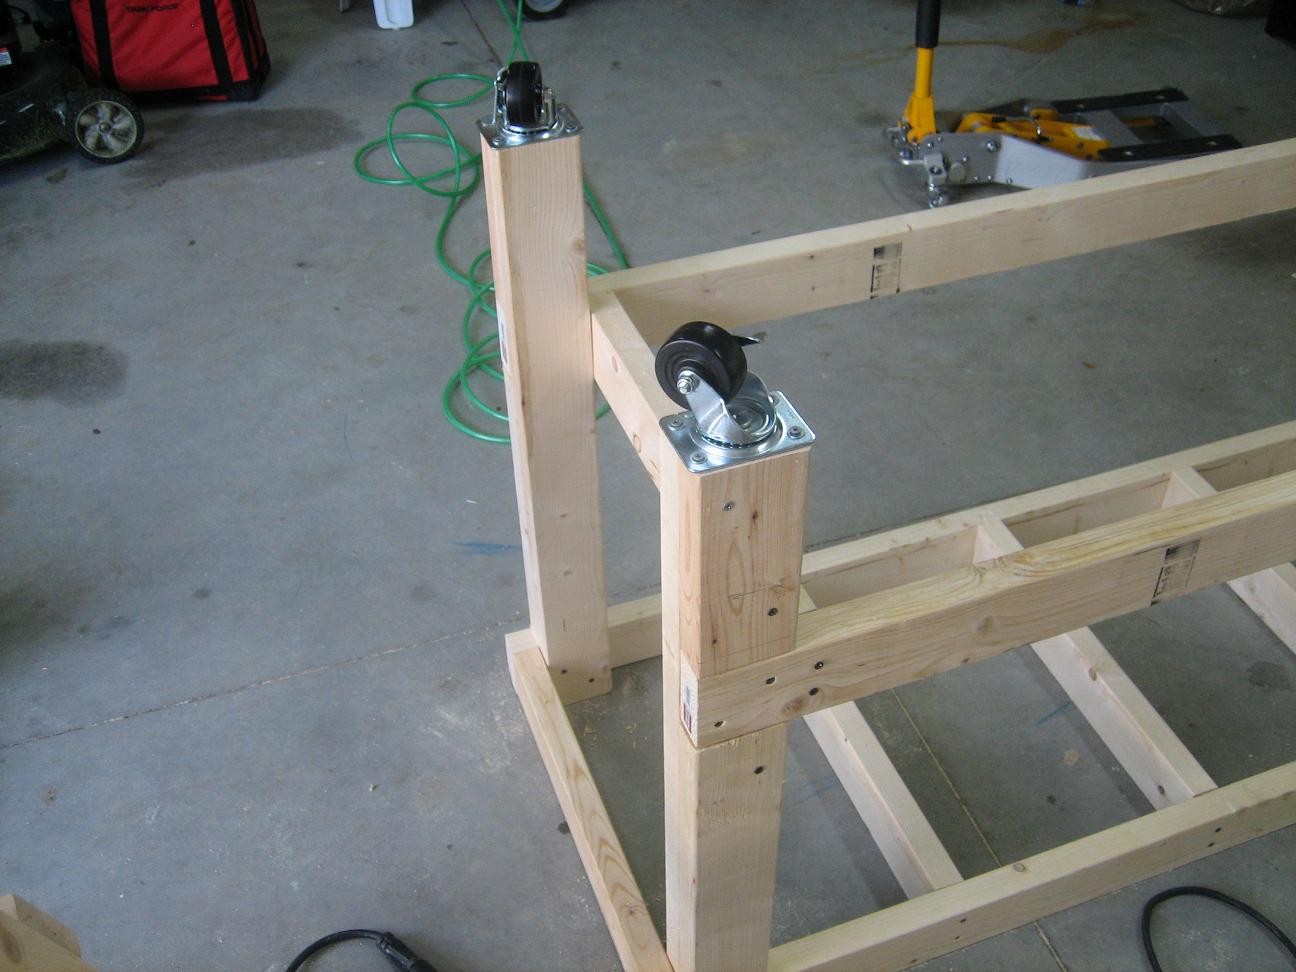 Work Bench Casters